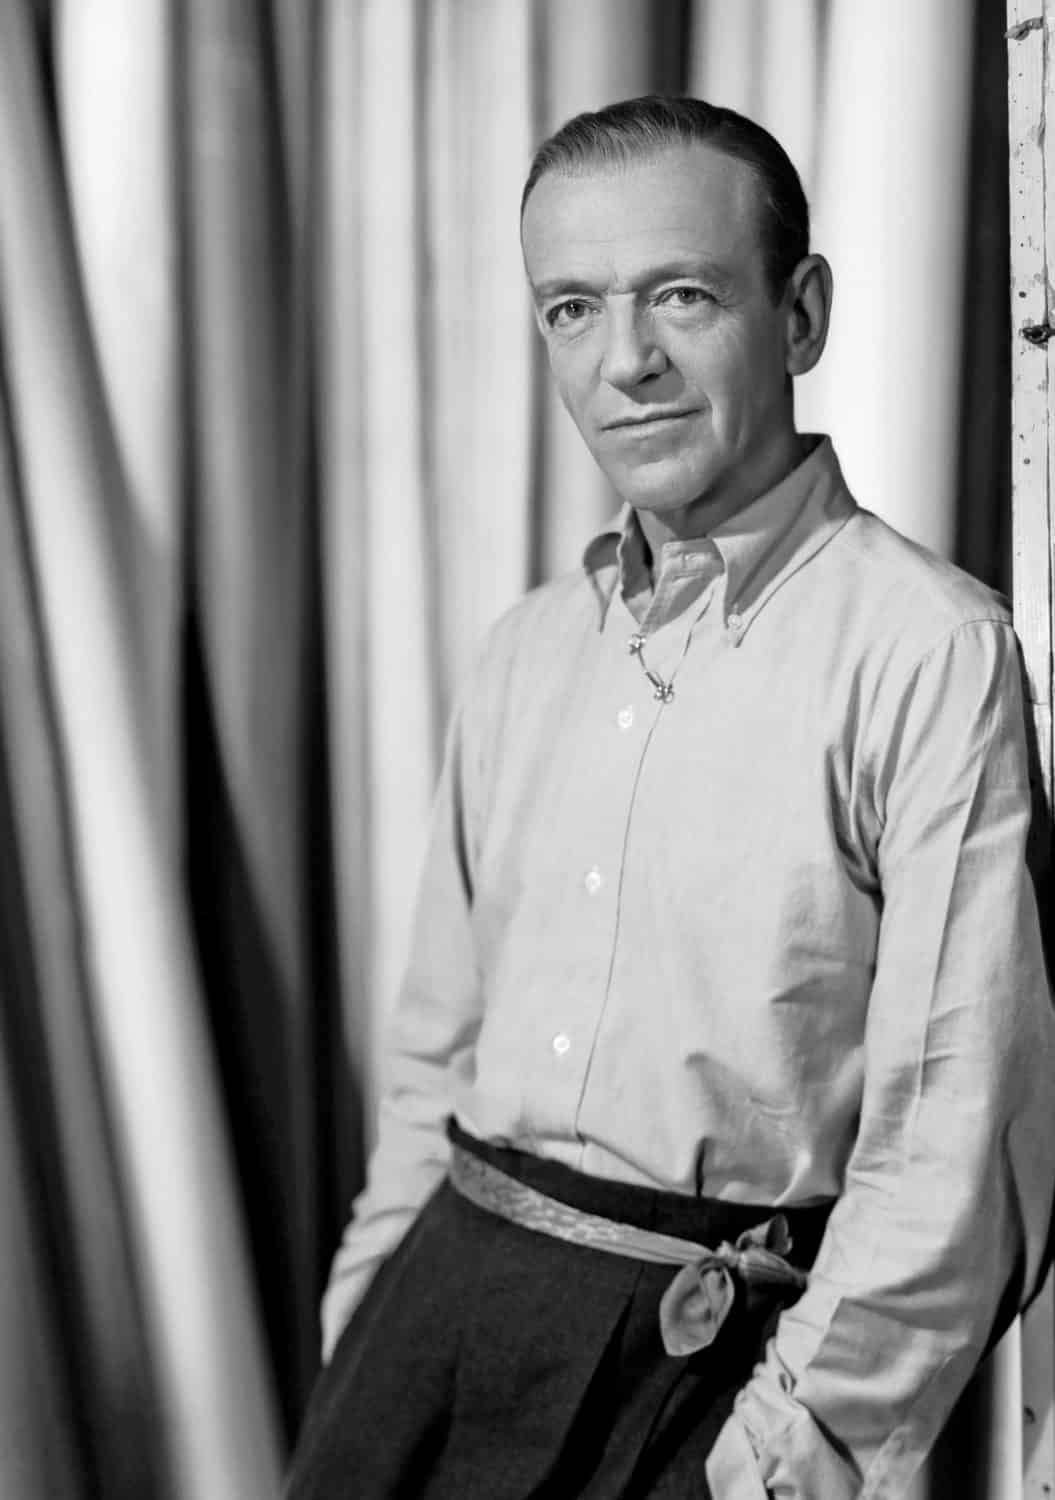 Fred Astaire wearing an OCBD shirt casually